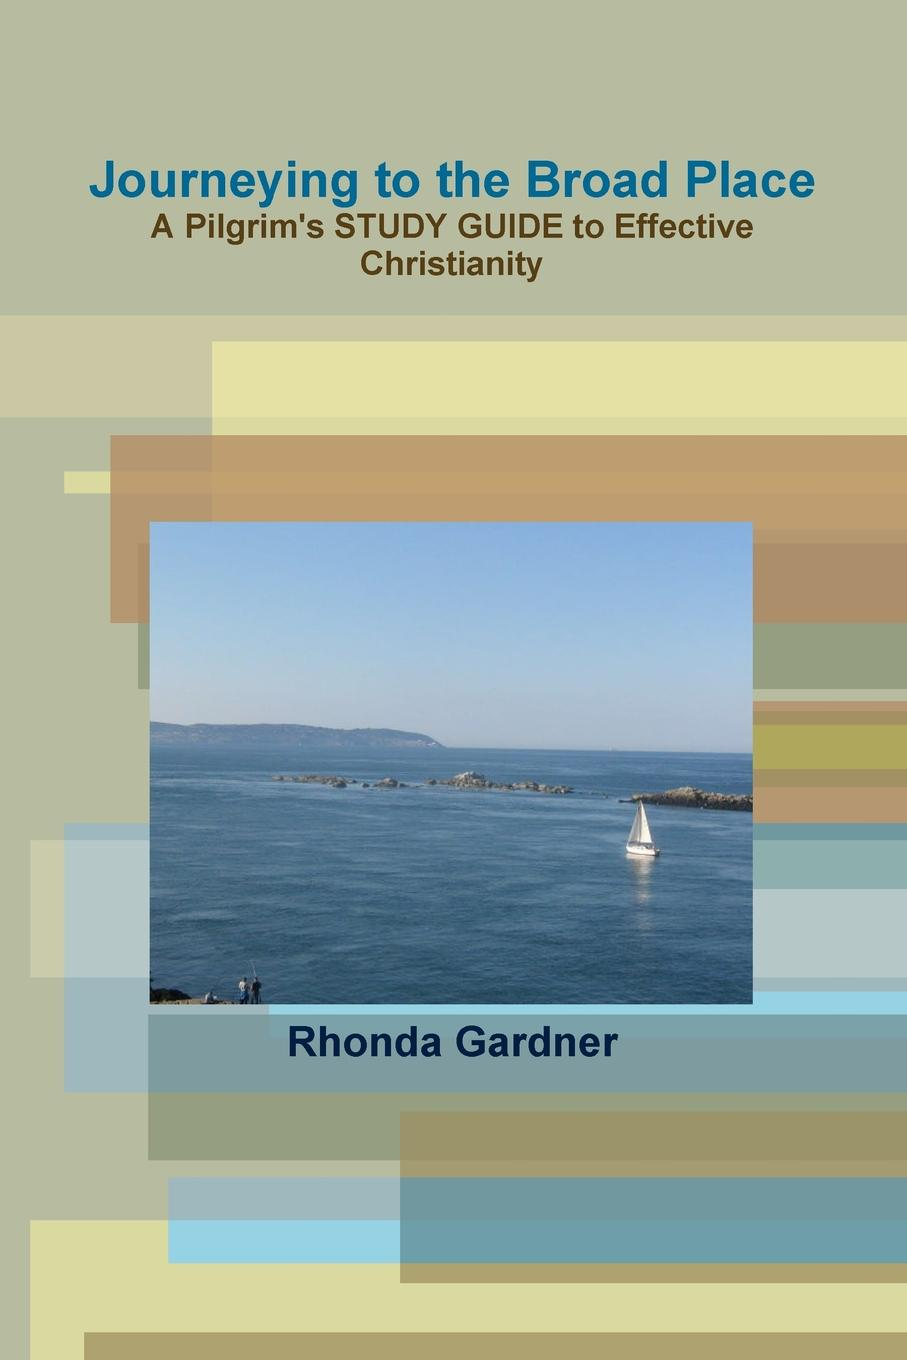 Rhonda Gardner Journeying to the Broad Place - A Pilgrim.s STUDY GUIDE to Effective Christianity a place to belong